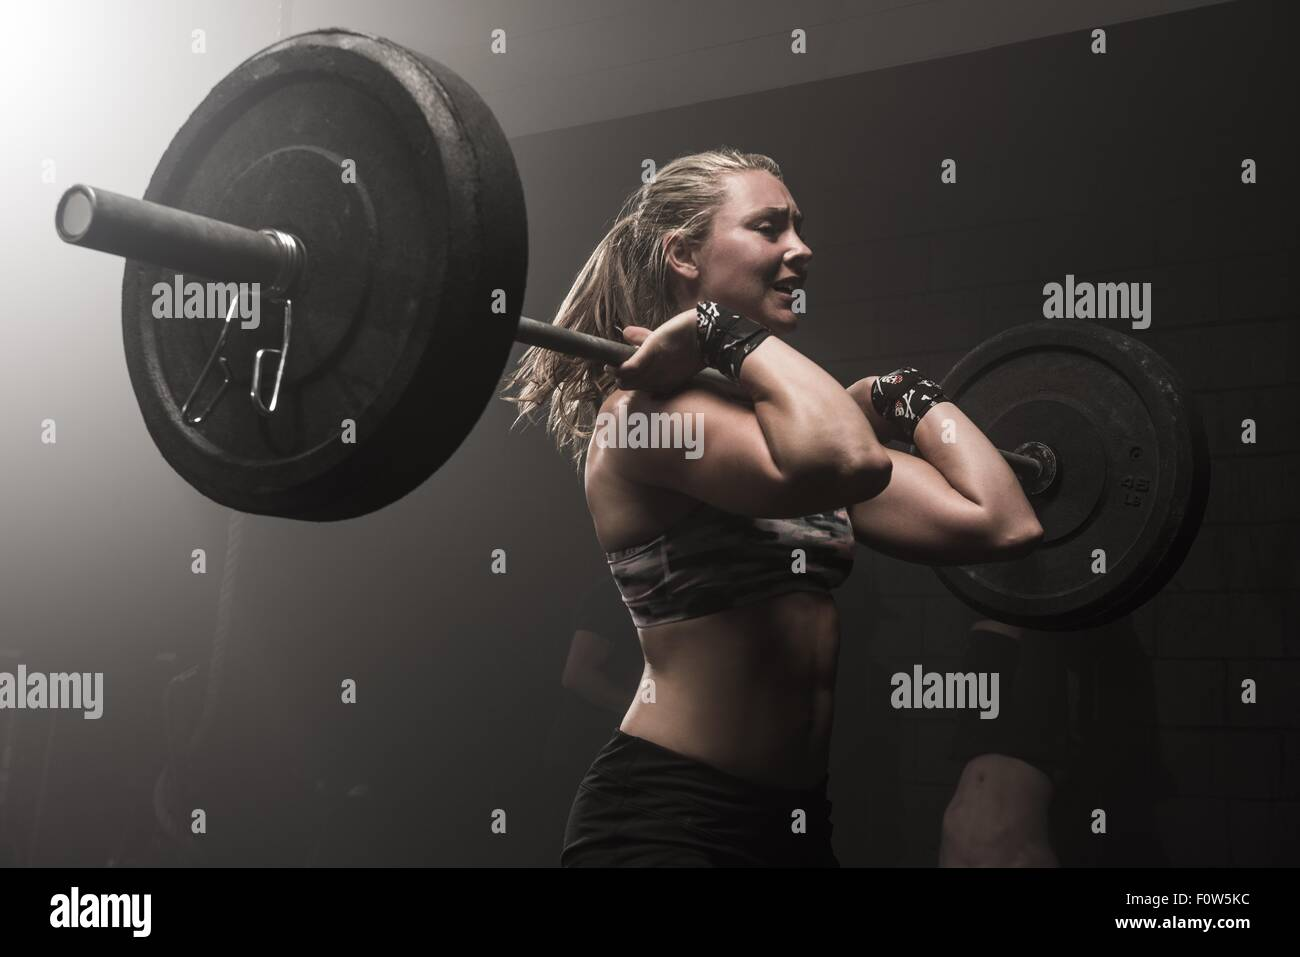 Jeune femme barbell levage Photo Stock